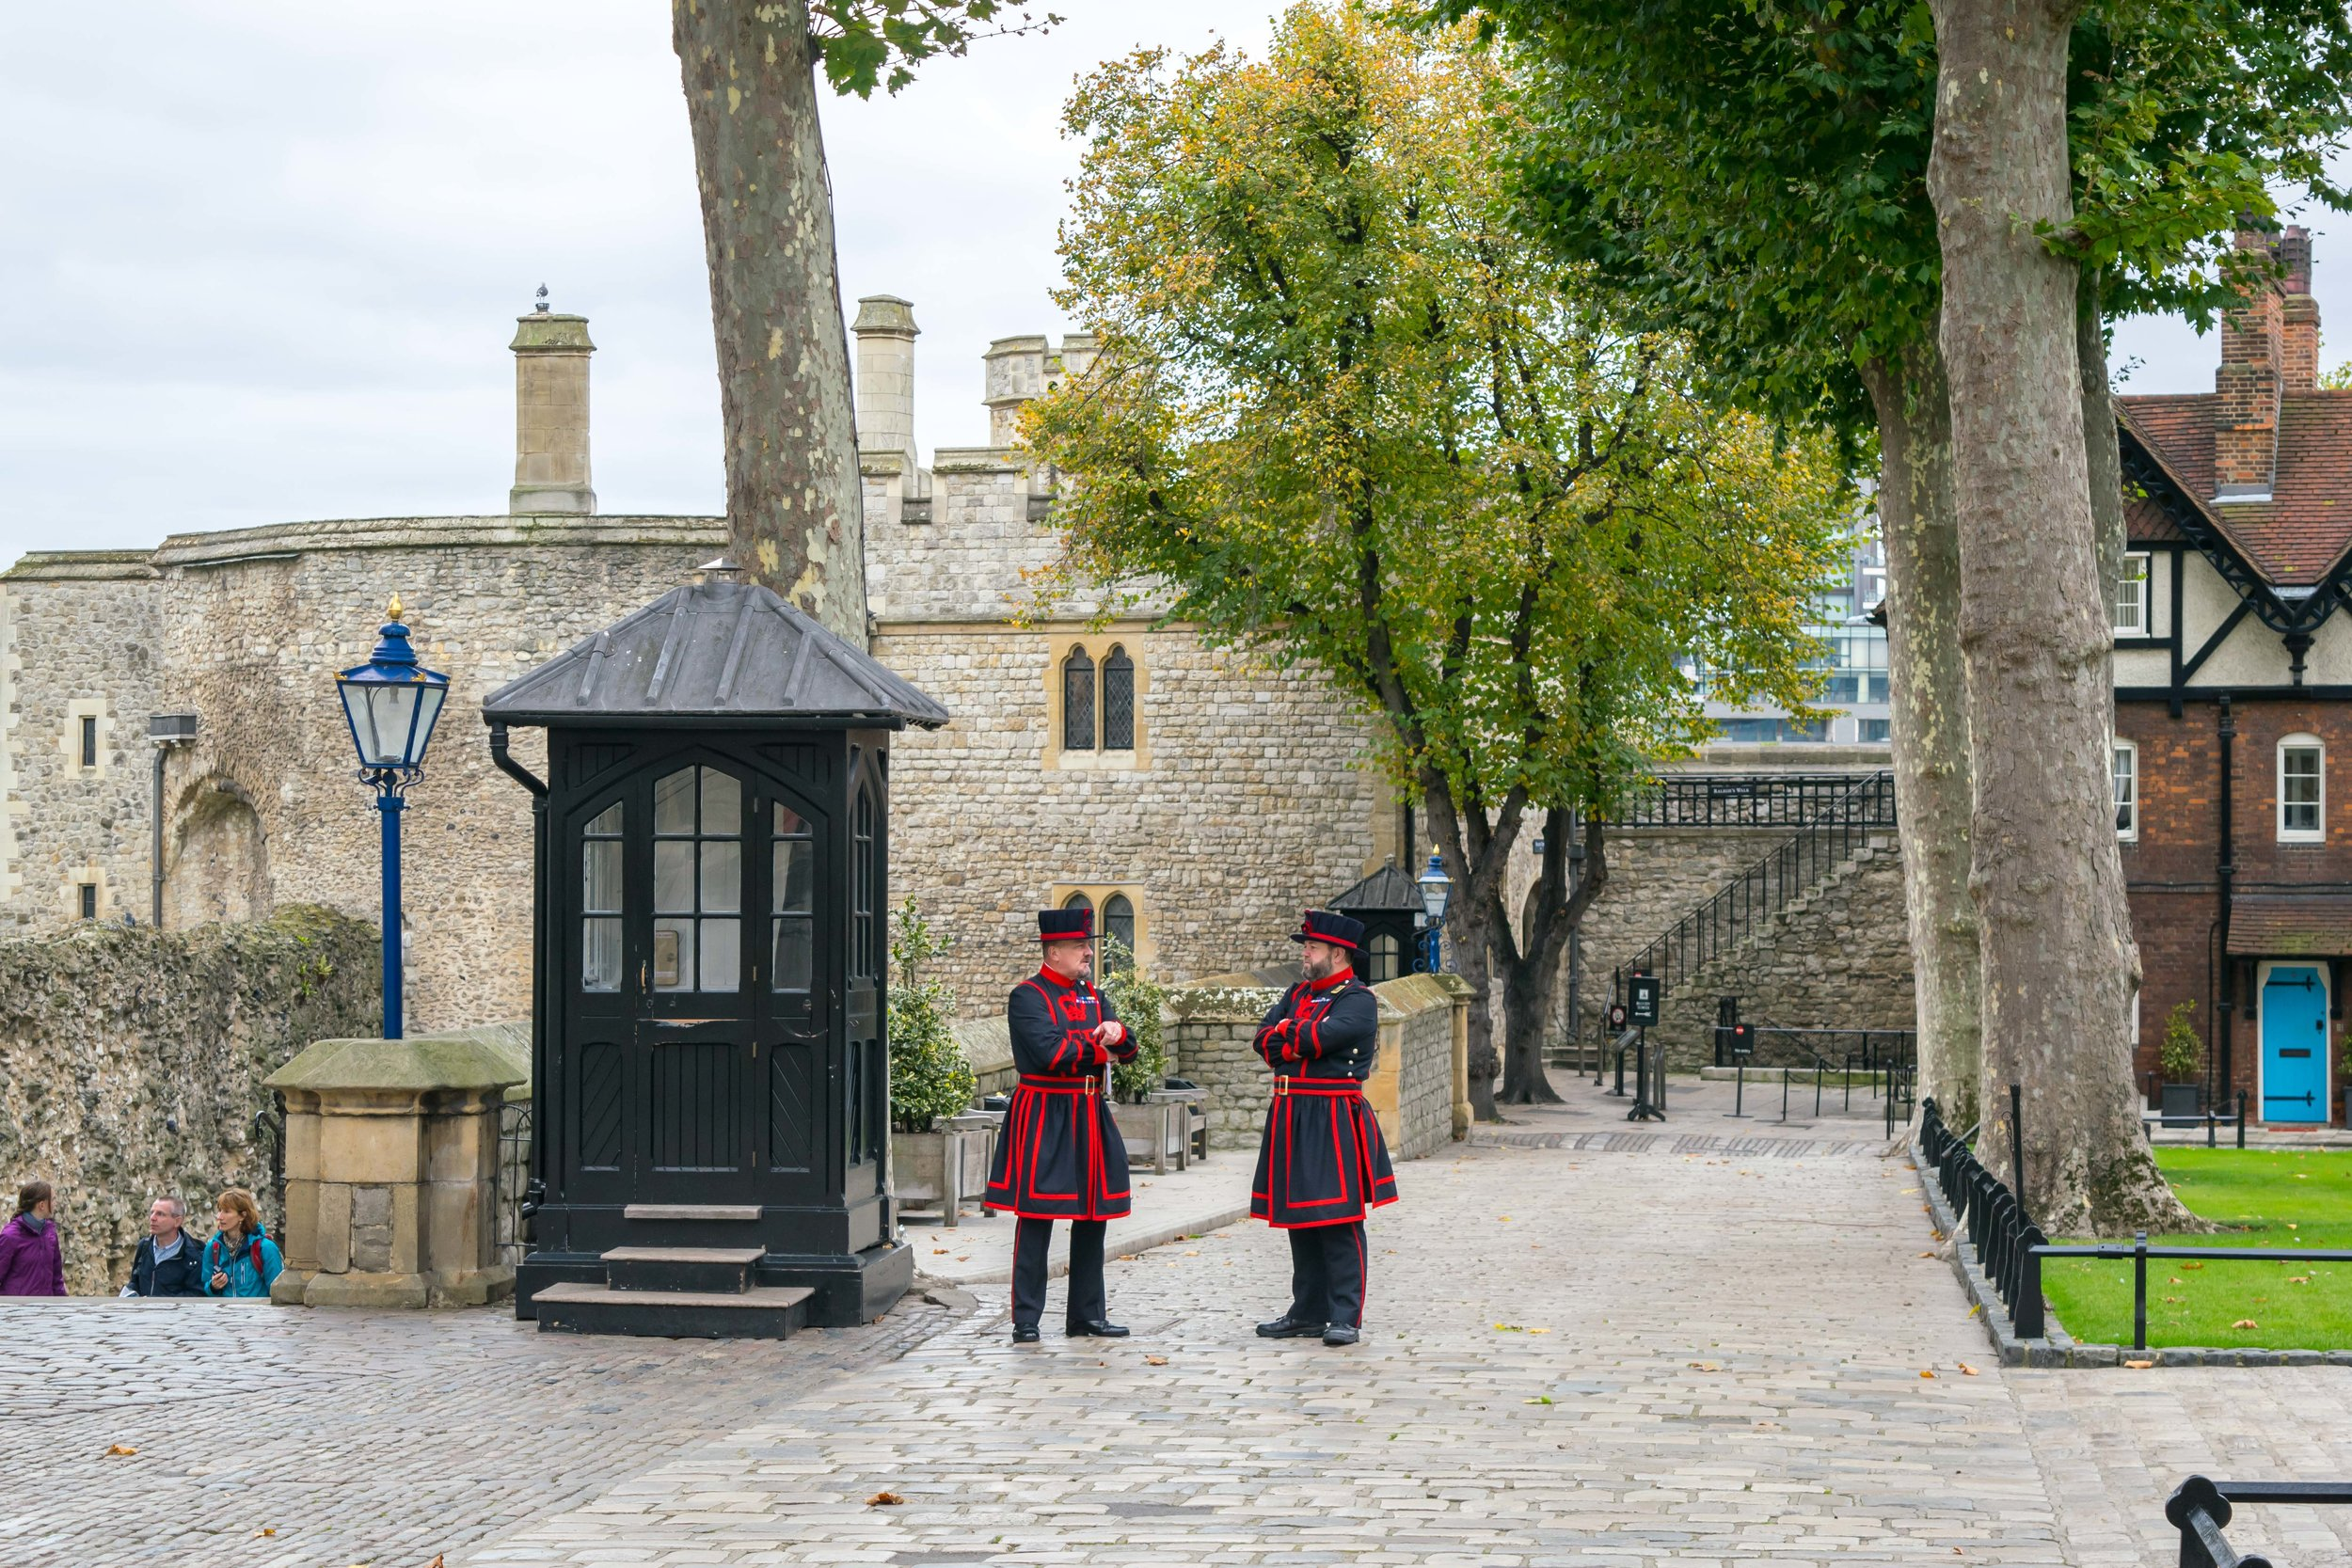 Yeoman Warder in the Tower of London